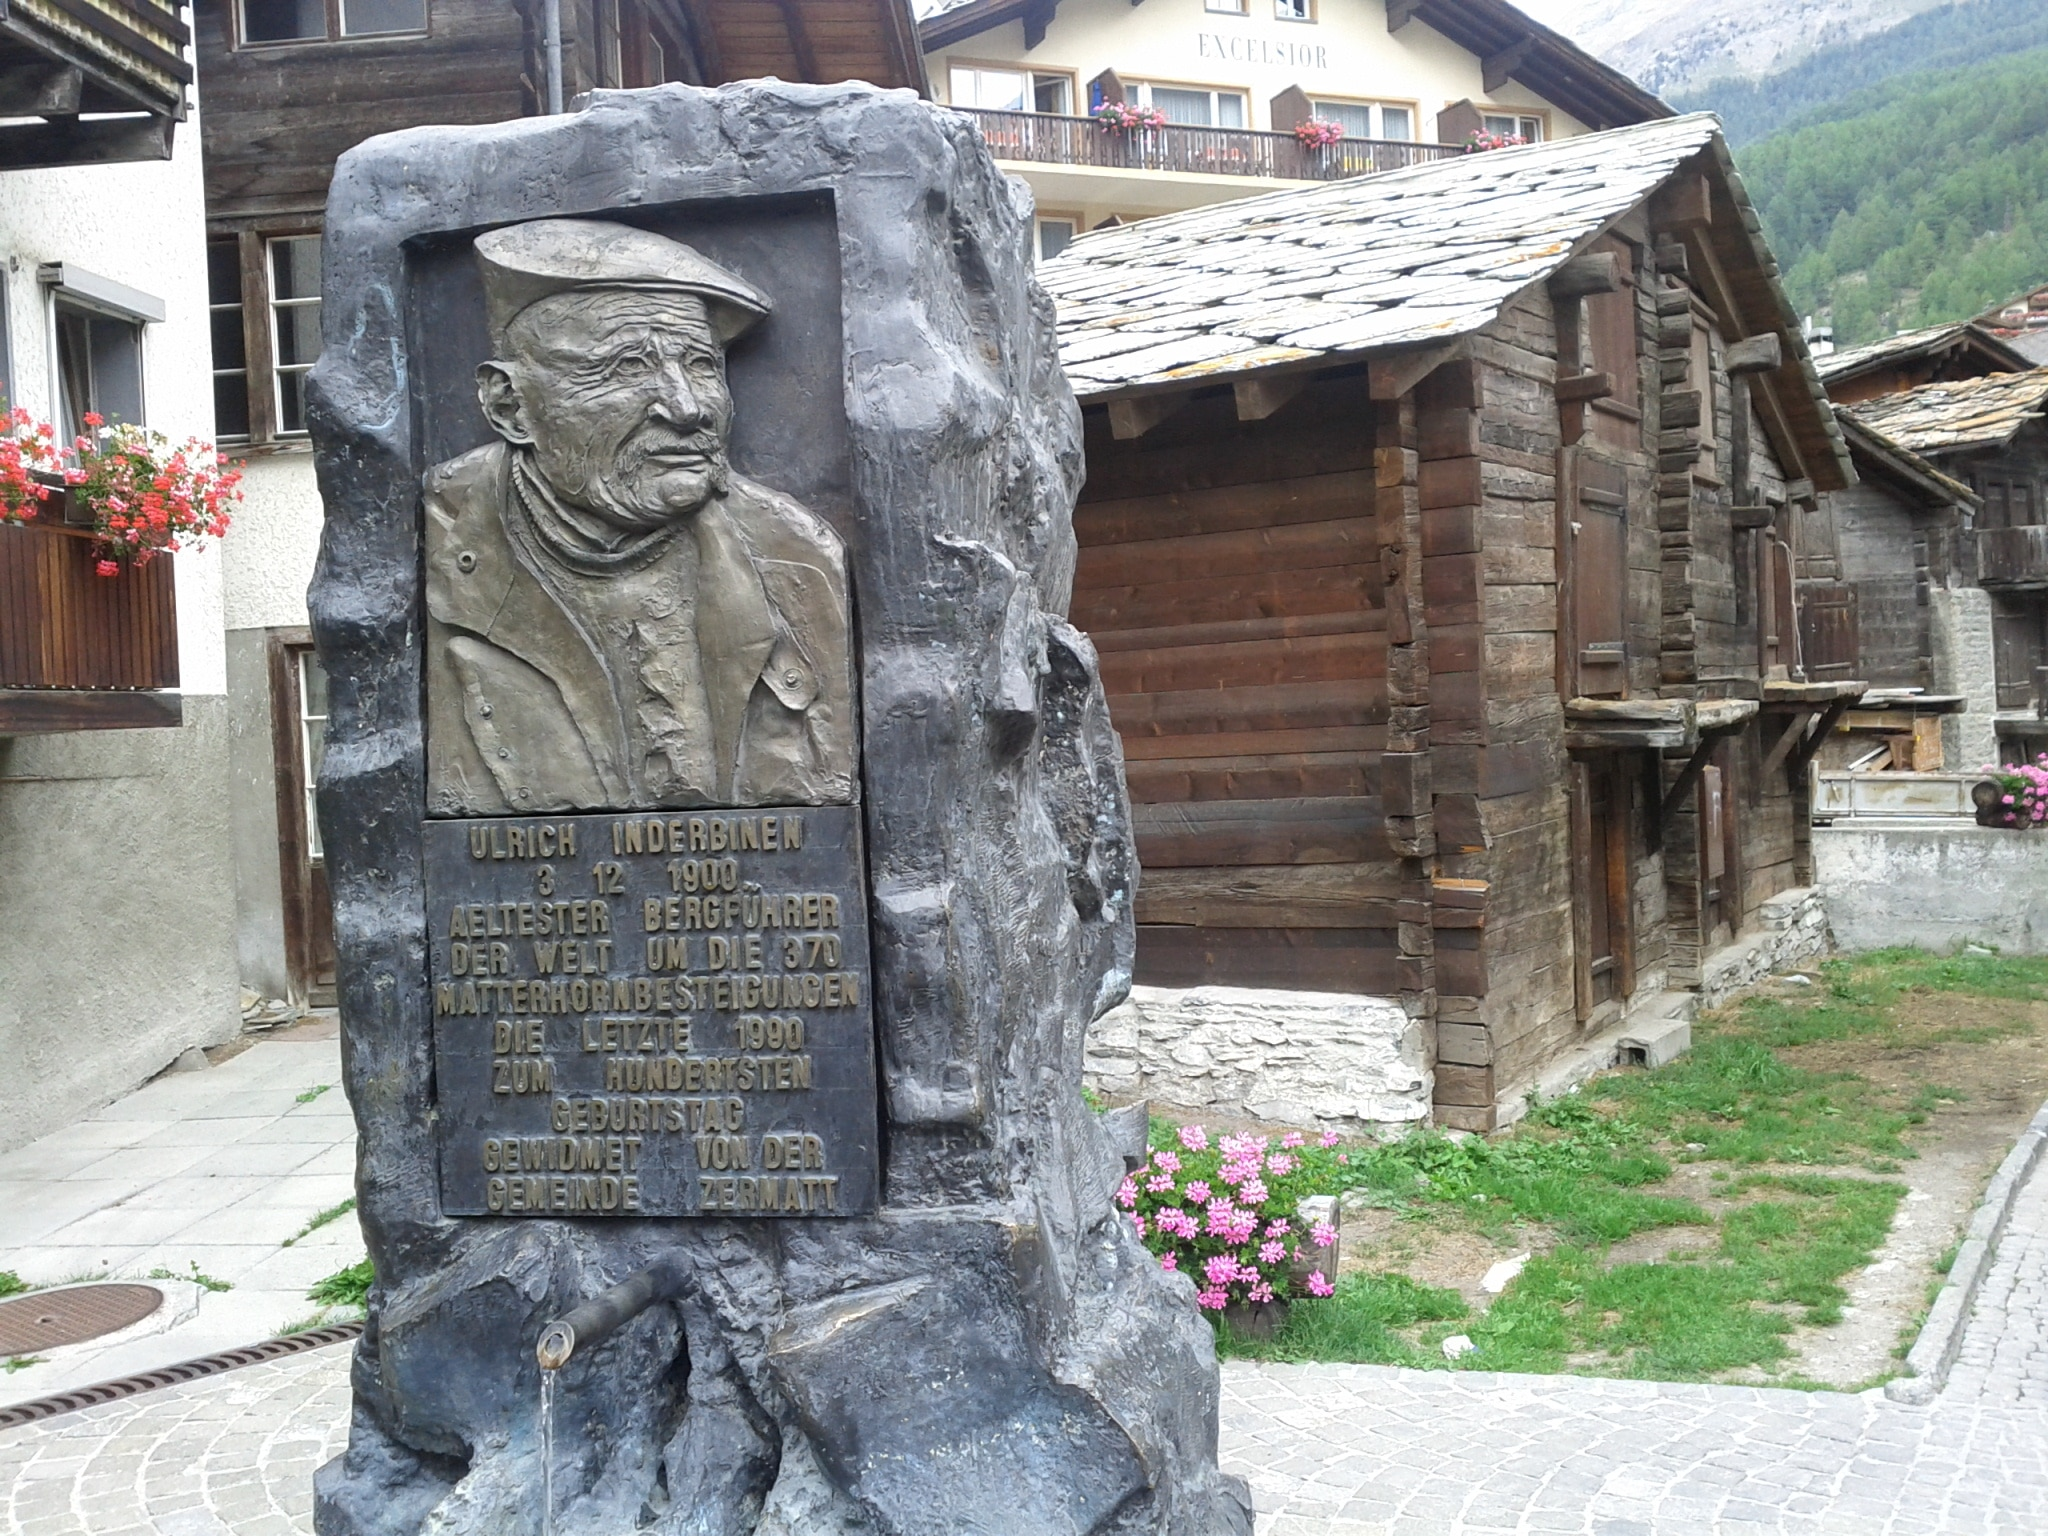 Memorial to local legend Ulrich Inderbinen​, a guide who lived to the age of 104. I saw him in 1990, when he climbed the Matterhorn for the last time - at the age of 90.